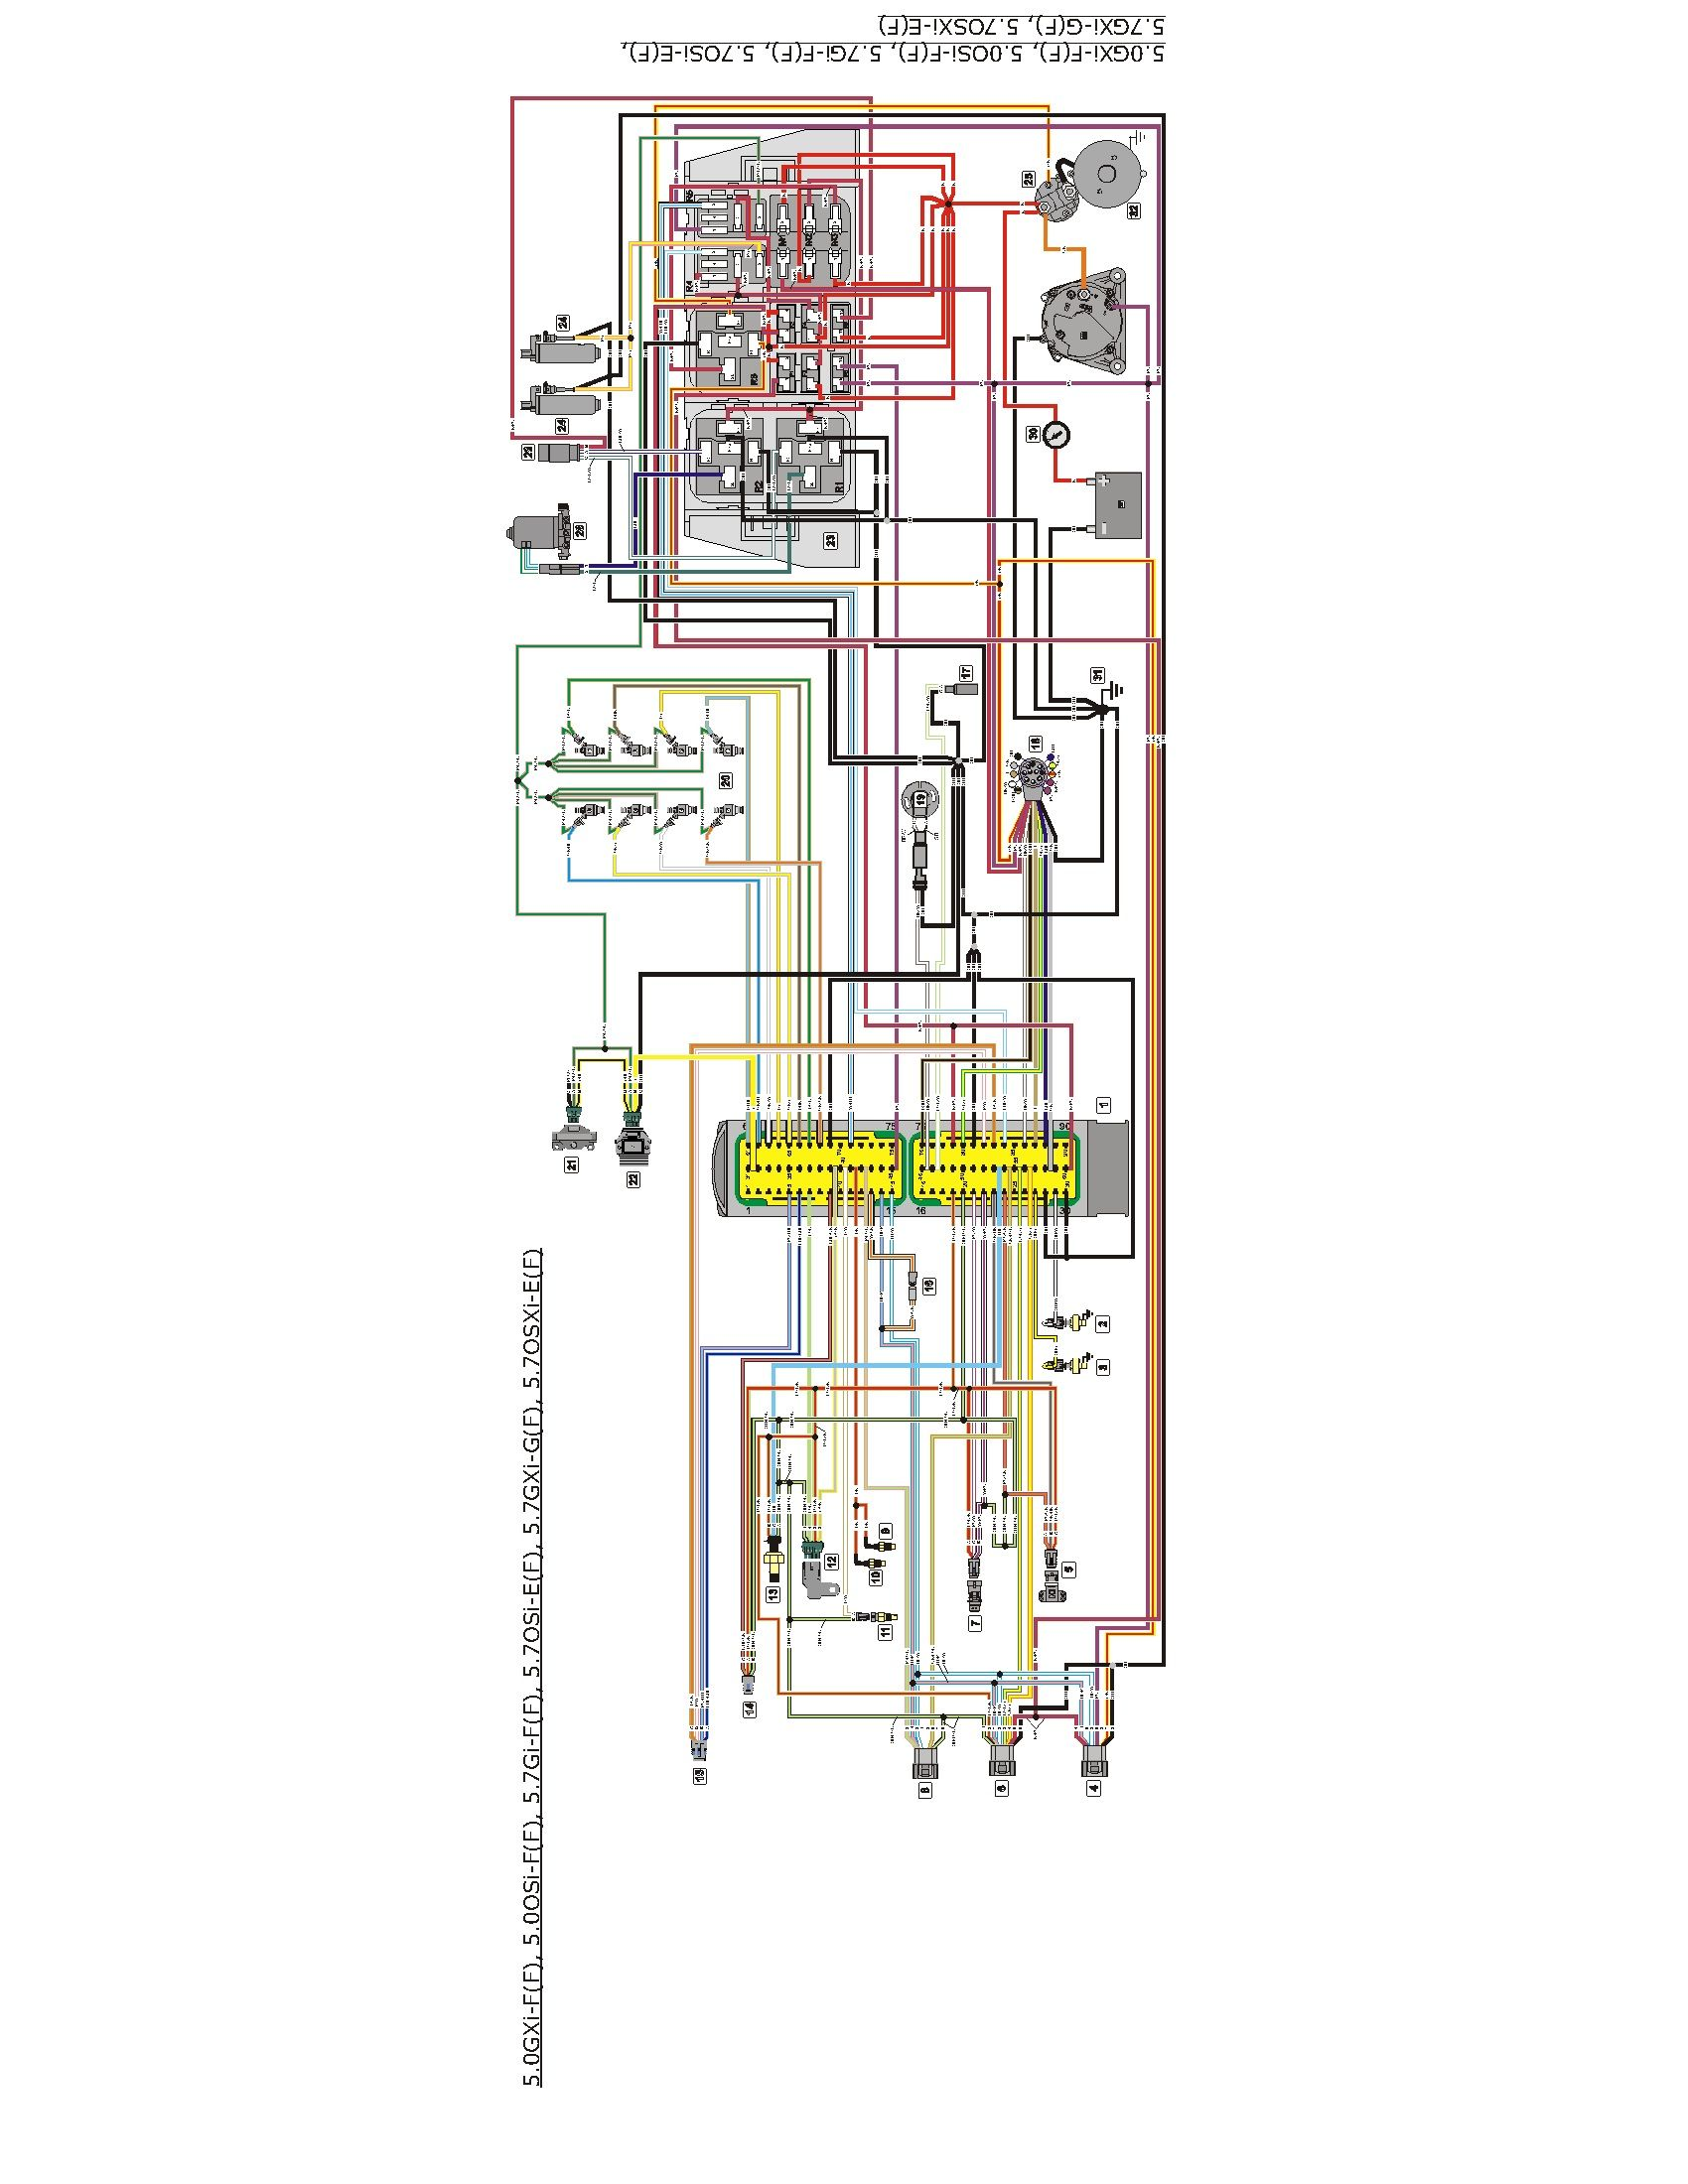 EBOOK-4232] Parts Manual Volvo 8 1 Gi G | 2019 Ebook Liry on porsche wiring harness, winnebago wiring harness, navistar wiring harness, john deere diesel wiring harness, jaguar wiring harness, lifan wiring harness, detroit diesel wiring harness, bass tracker wiring harness, mitsubishi wiring harness, perkins wiring harness, chevy wiring harness, dodge wiring harness, lexus wiring harness, bbc wiring harness, piaggio wiring harness, hyundai wiring harness, maserati wiring harness, astro van wiring harness, yamaha wiring harness, case wiring harness,